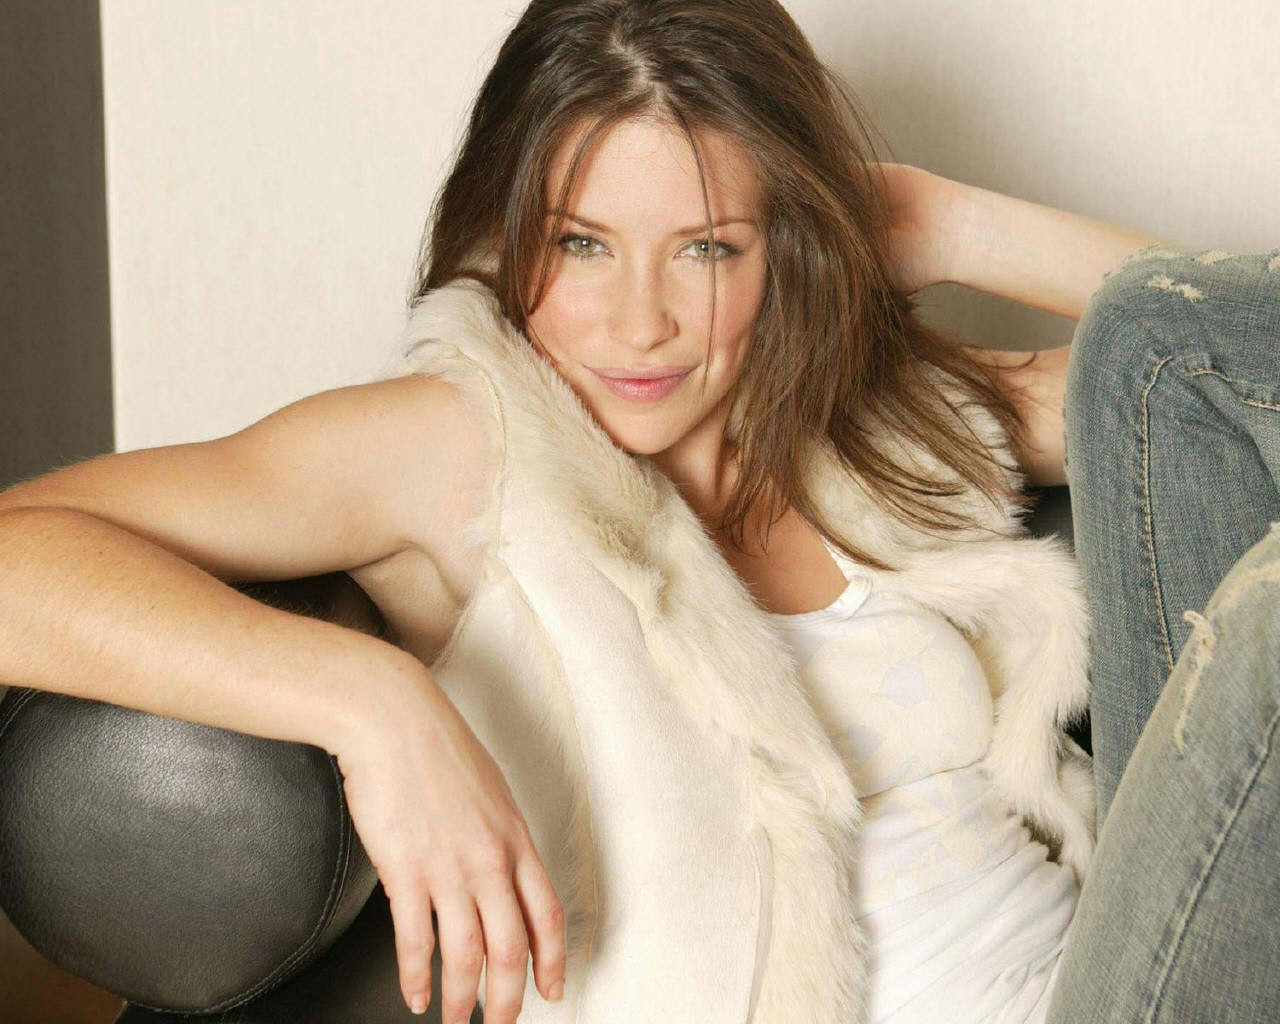 Evangeline Lilly   Evangeline Lilly Wallpaper 78683 1280x1024